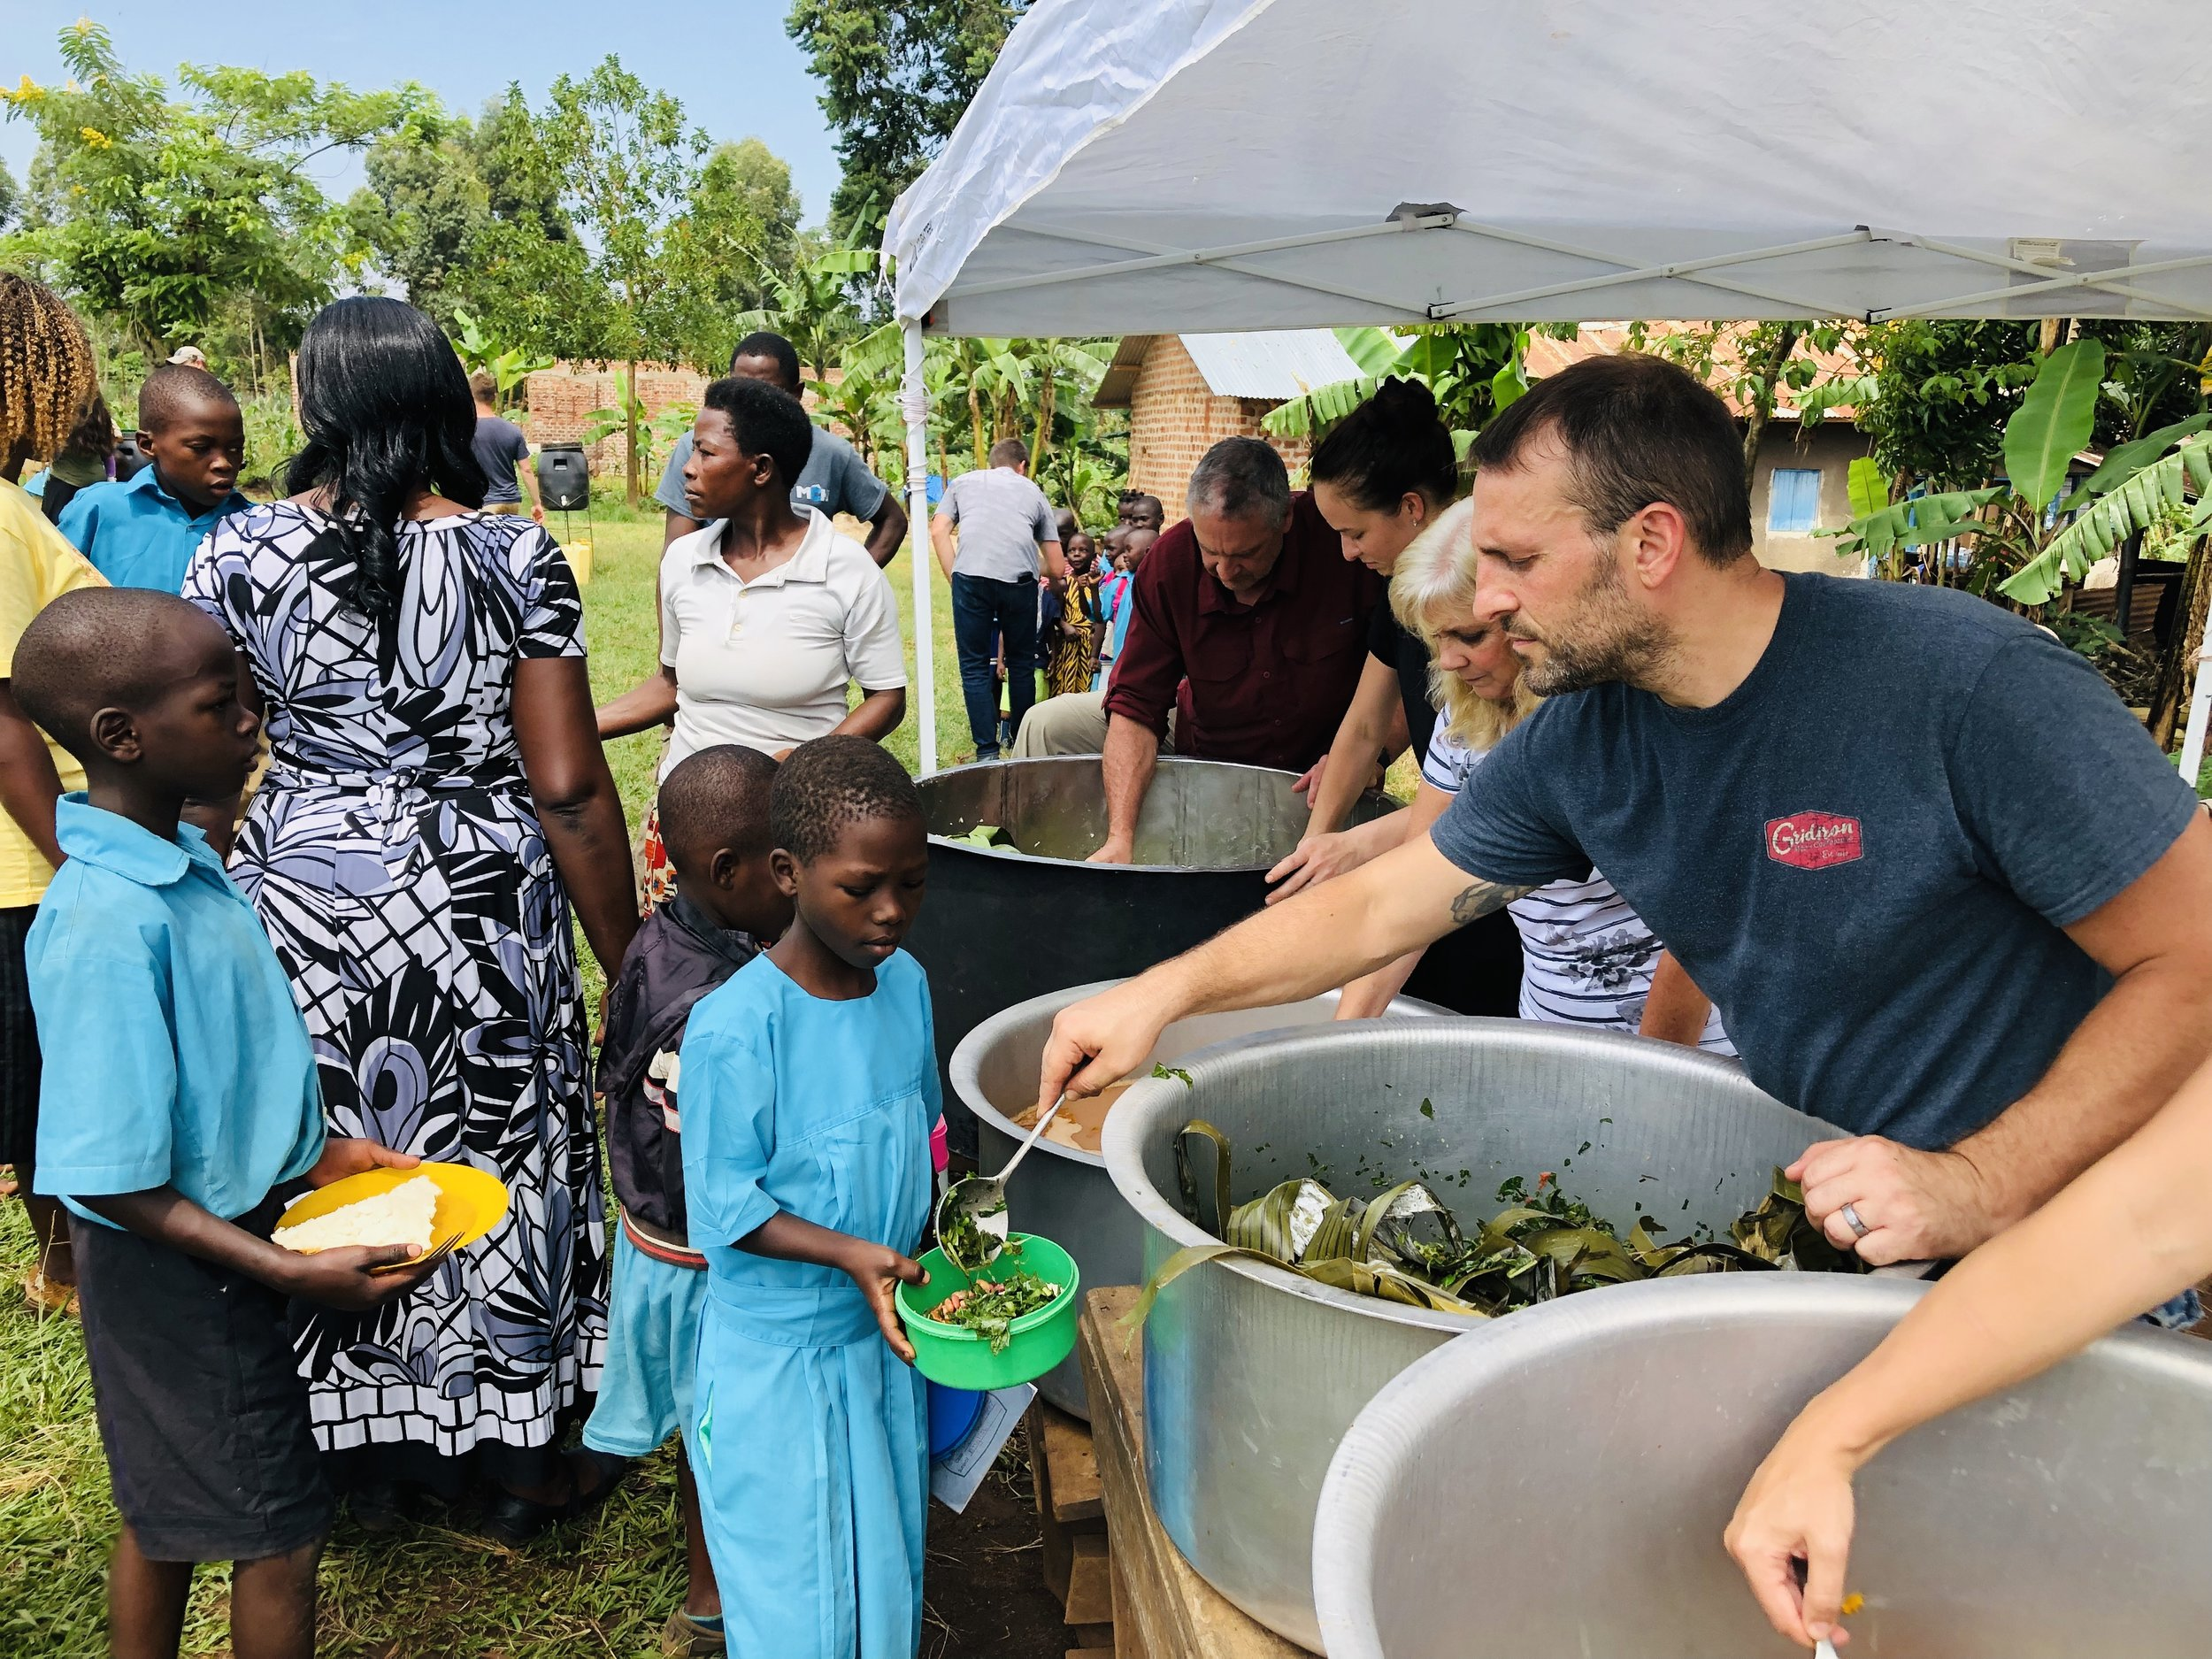 While G.O.D. has employed farmers to grow food and given assistance to the school cook, preparing and serving the food still depends on volunteers. Last week participants in the Family and Friends trip were able to harvest, prepare and serve lunch.